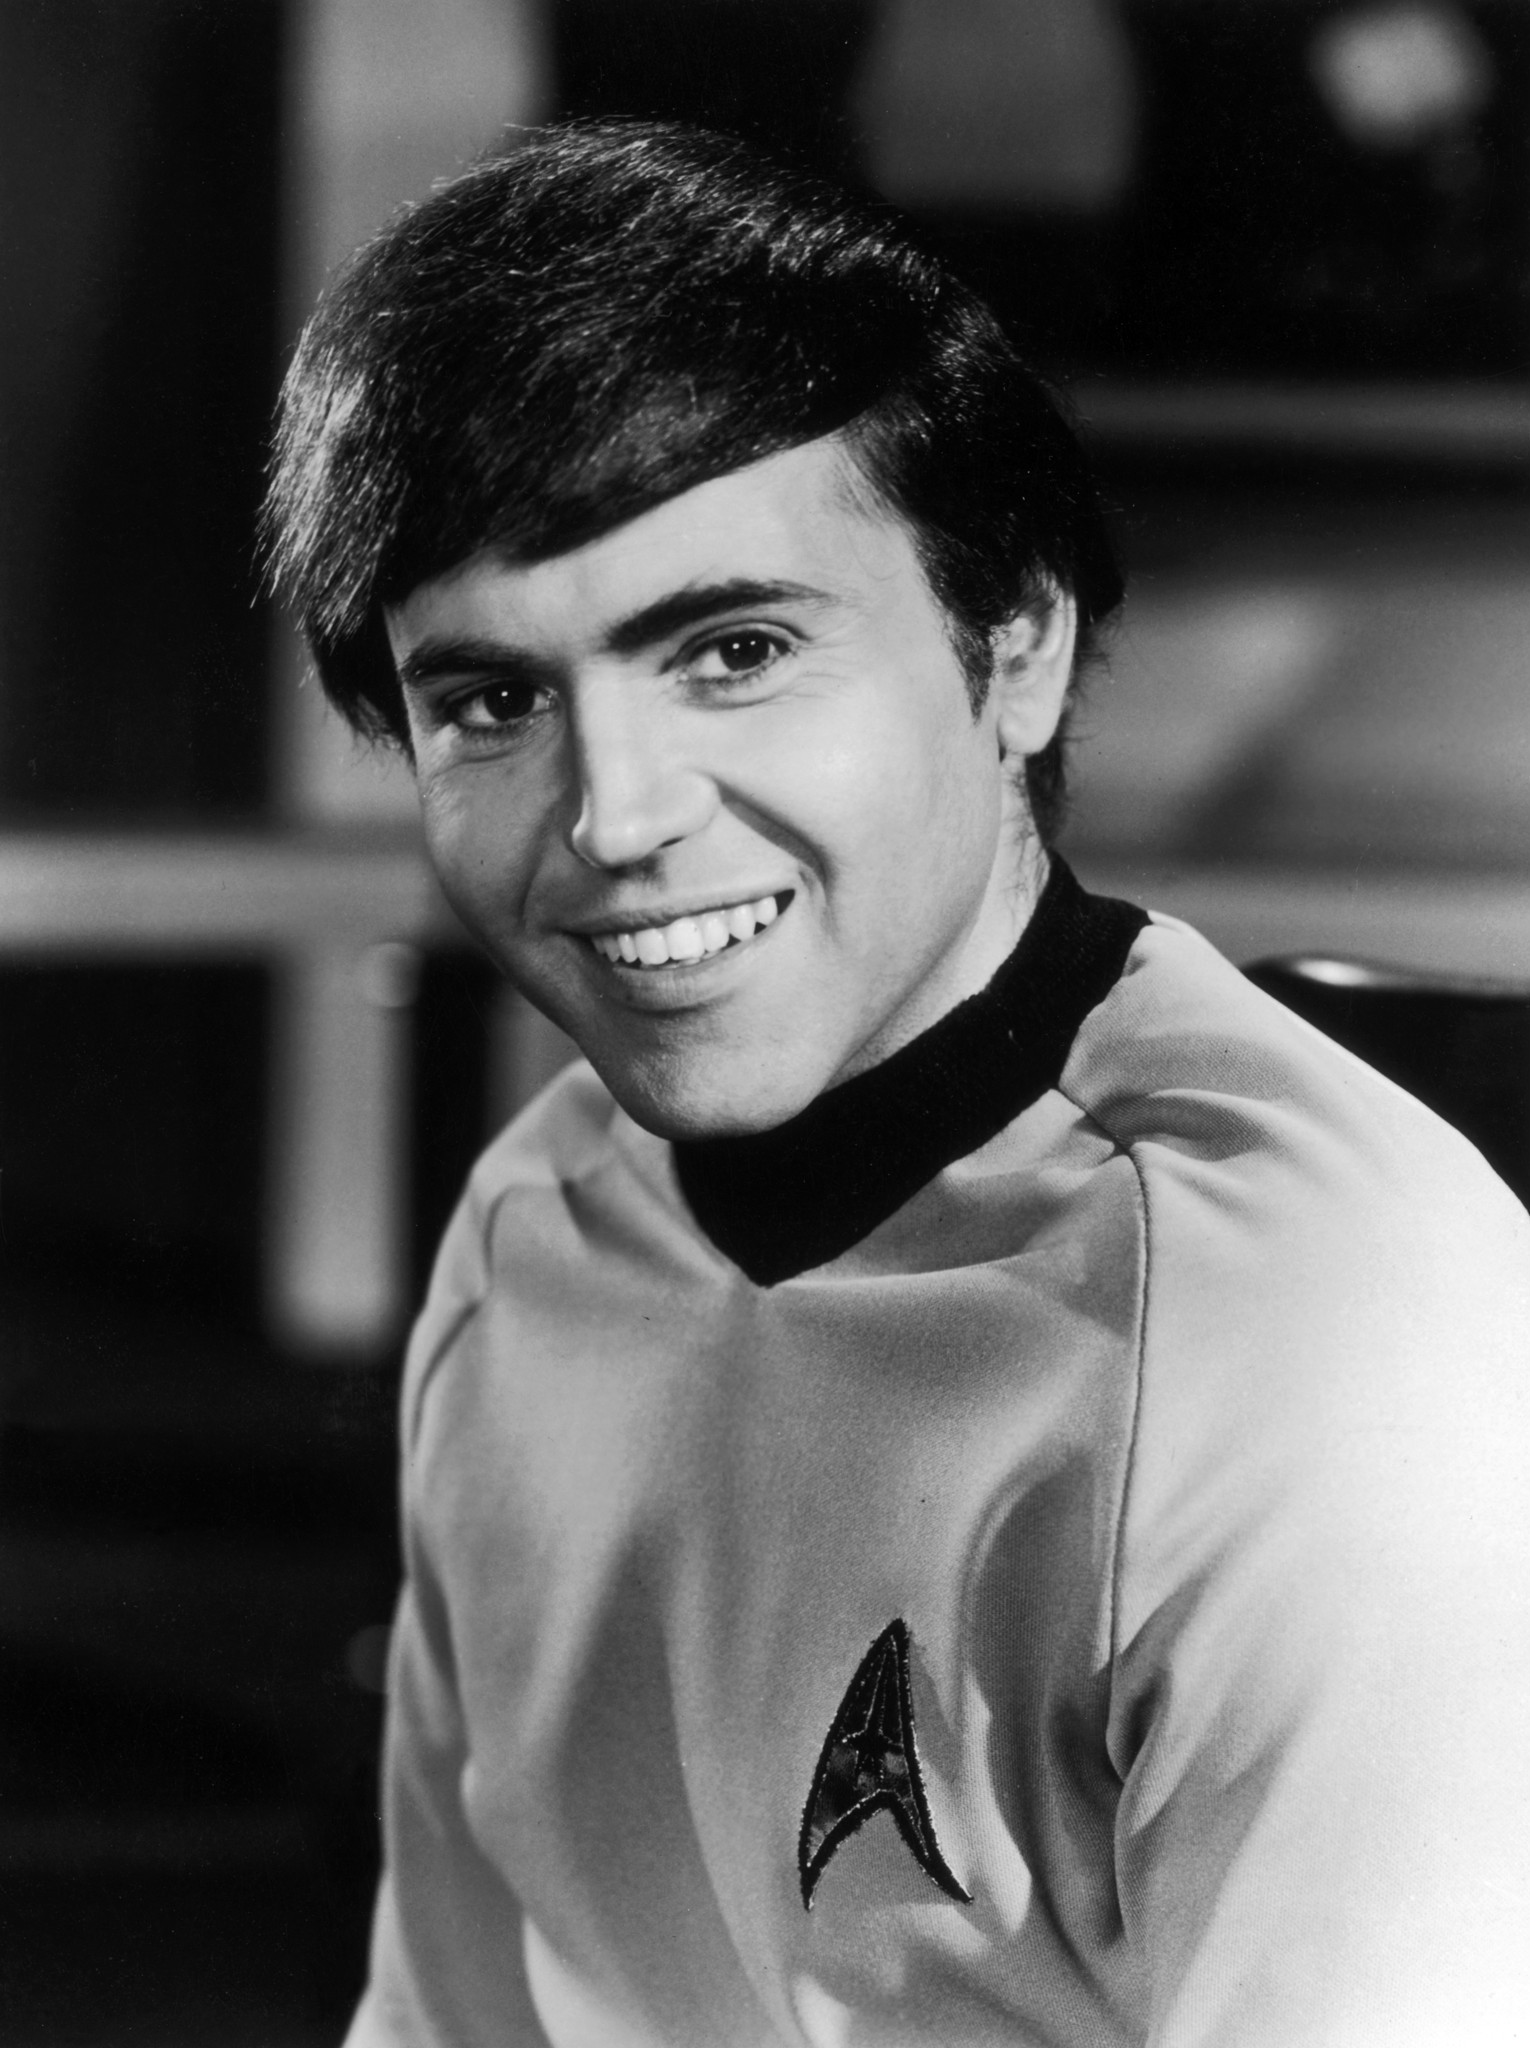 Walter Joenig as Chekov in Star Trek, circa 1969